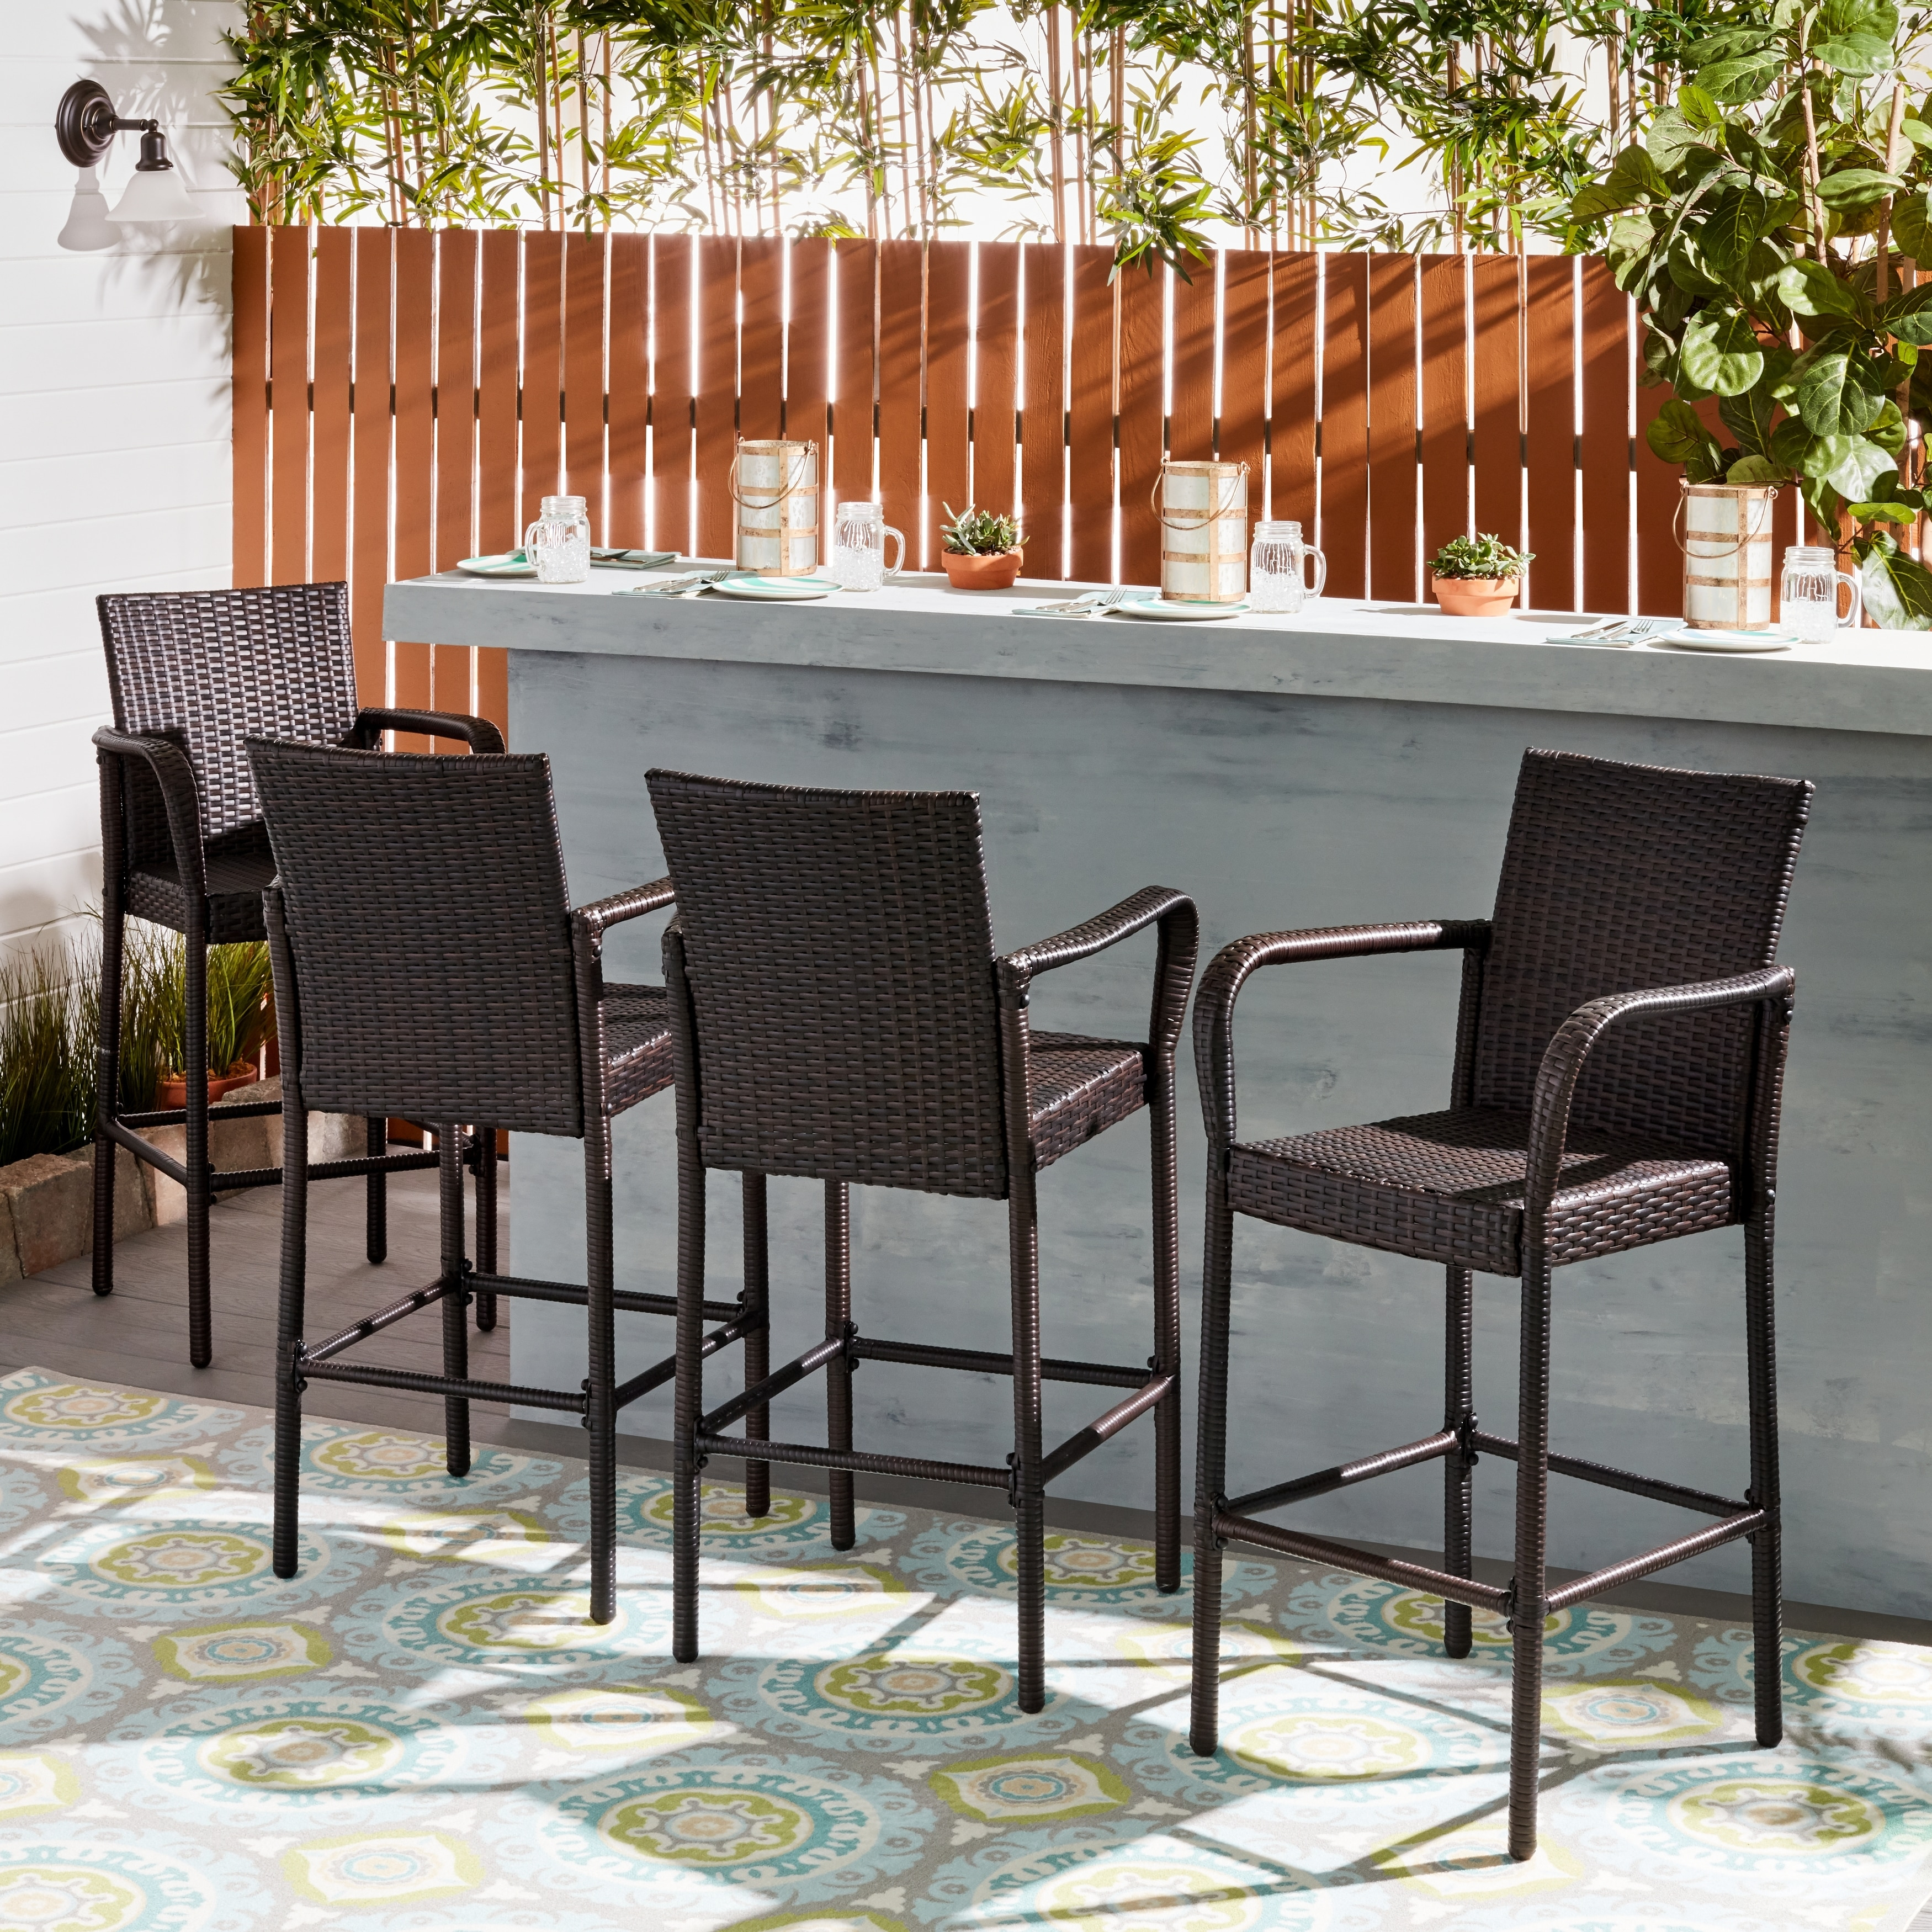 chair clara dining set products great chairs of outdoor cushion with wicker